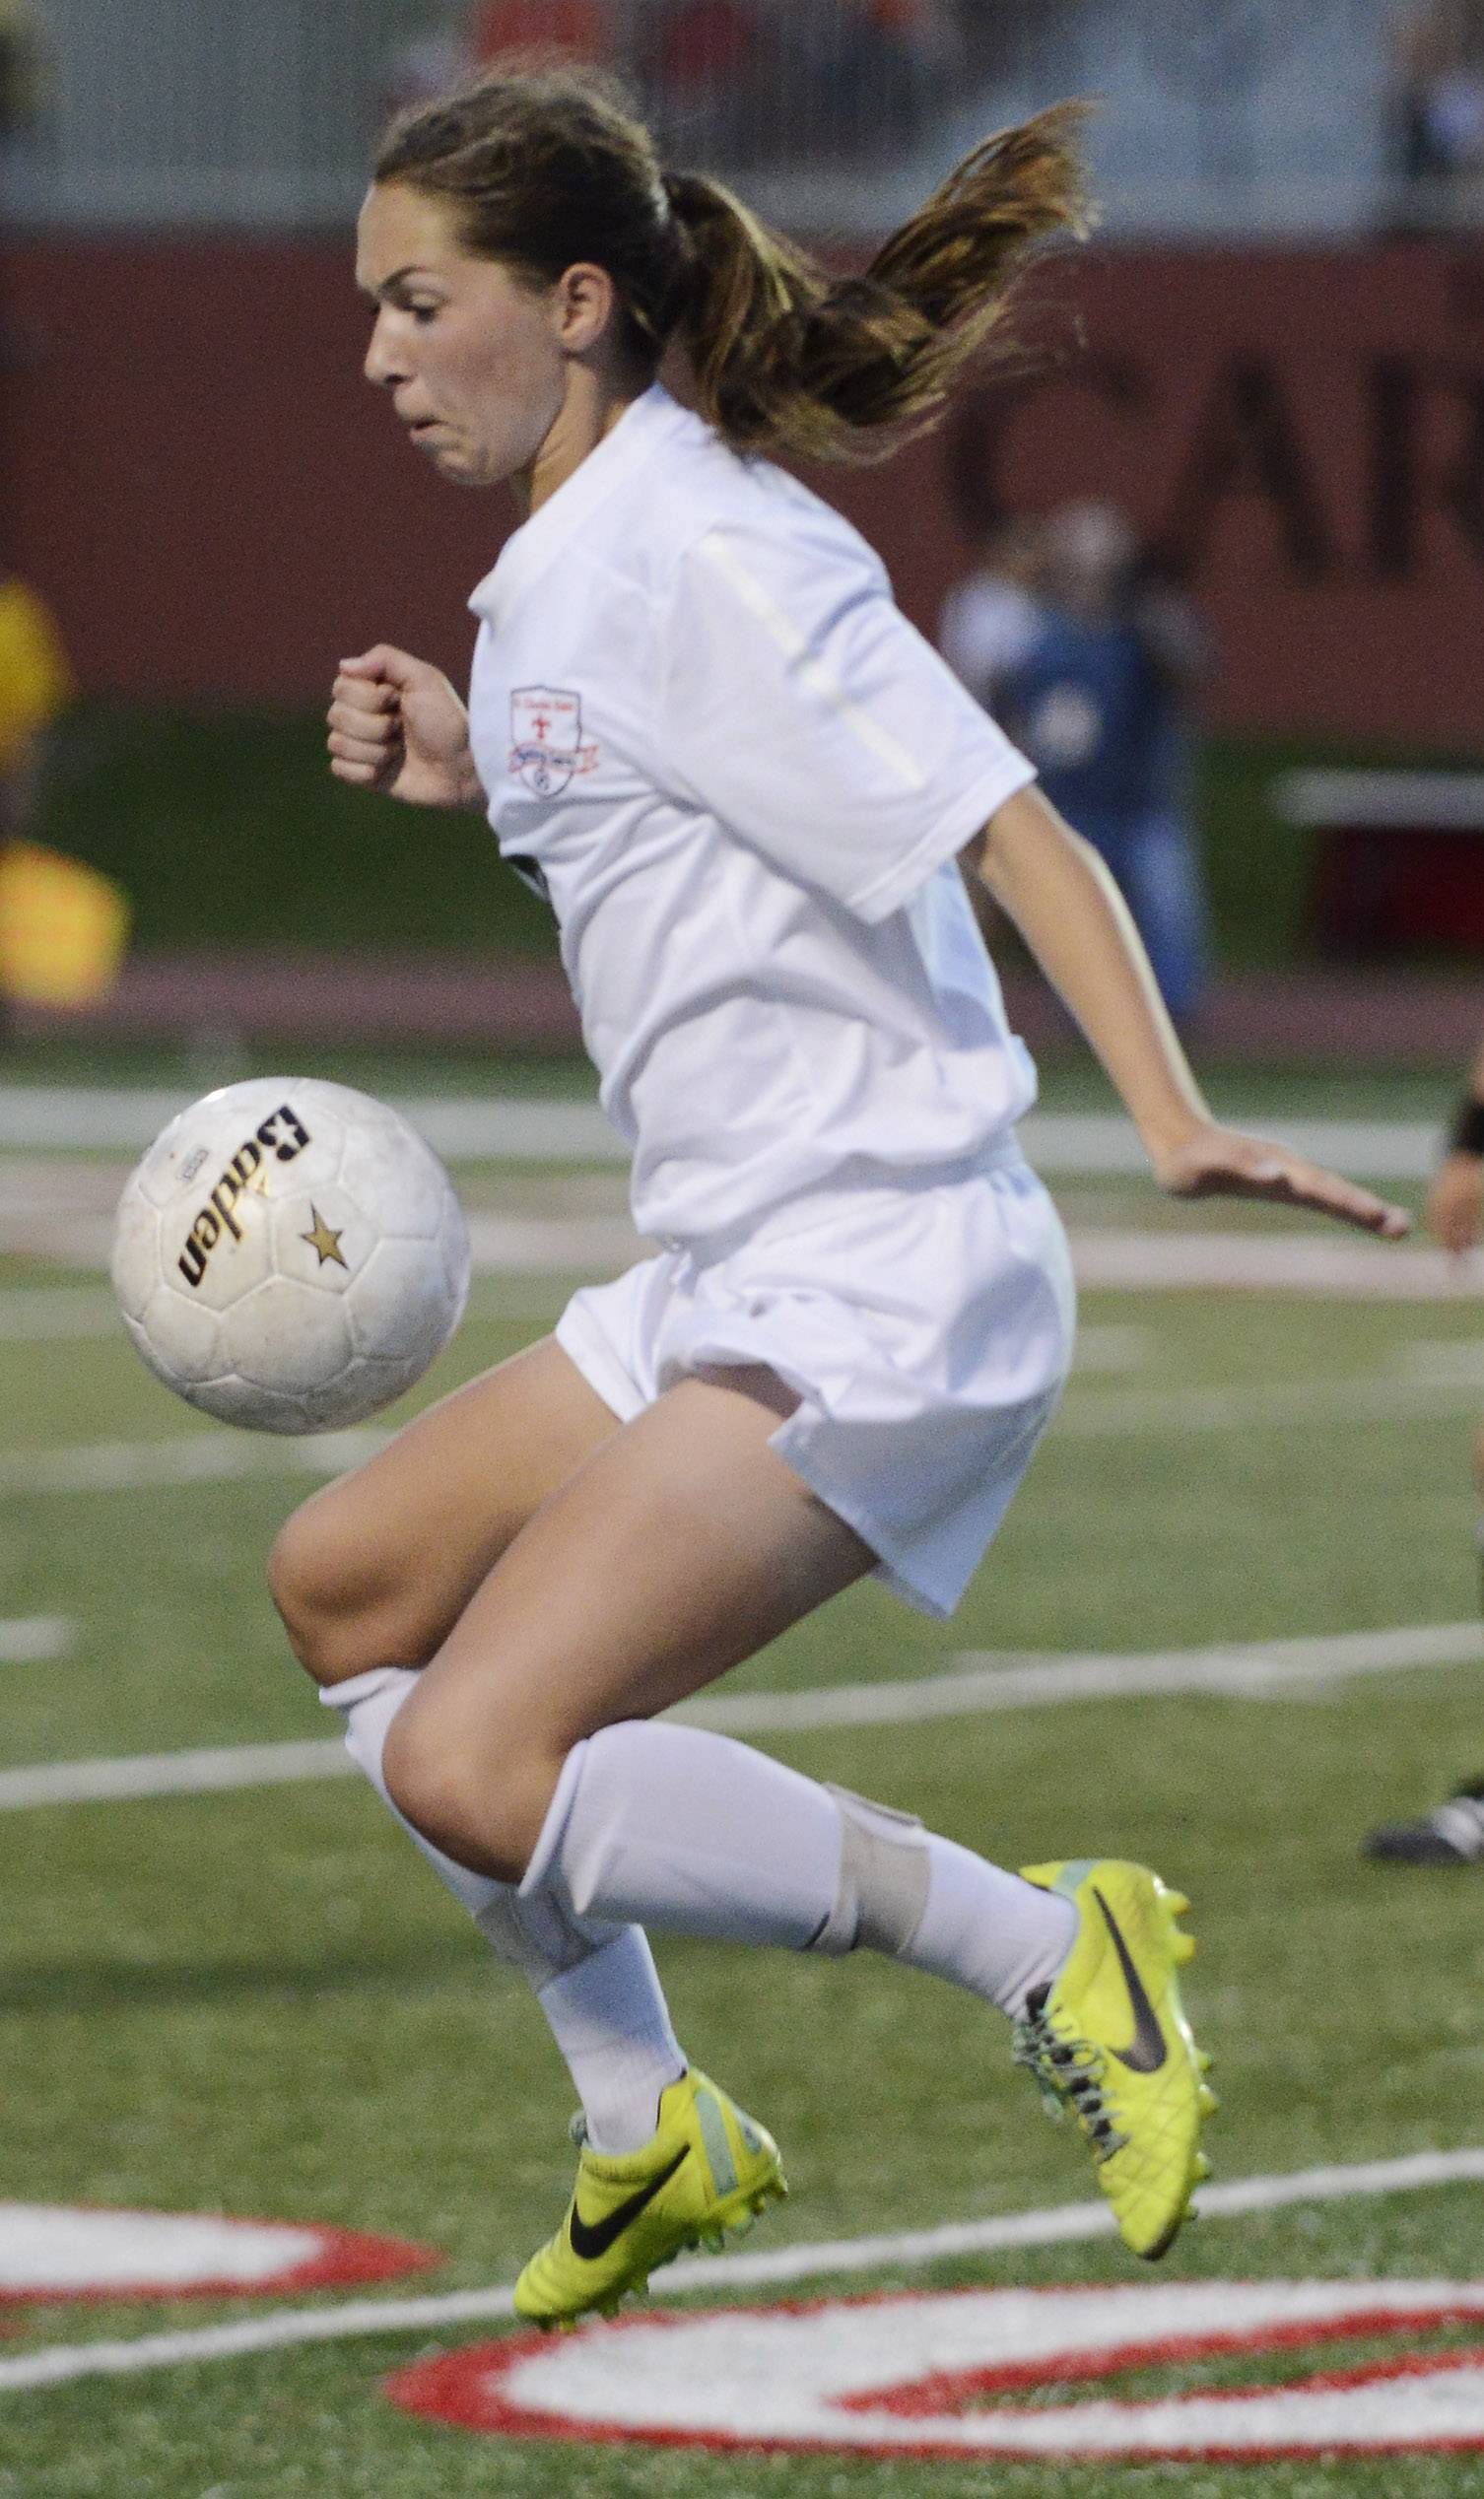 Darcy Cunningham of St. Charles East leaps for the ball during the girls soccer Class 3A state final at North Central College in Naperville Saturday.